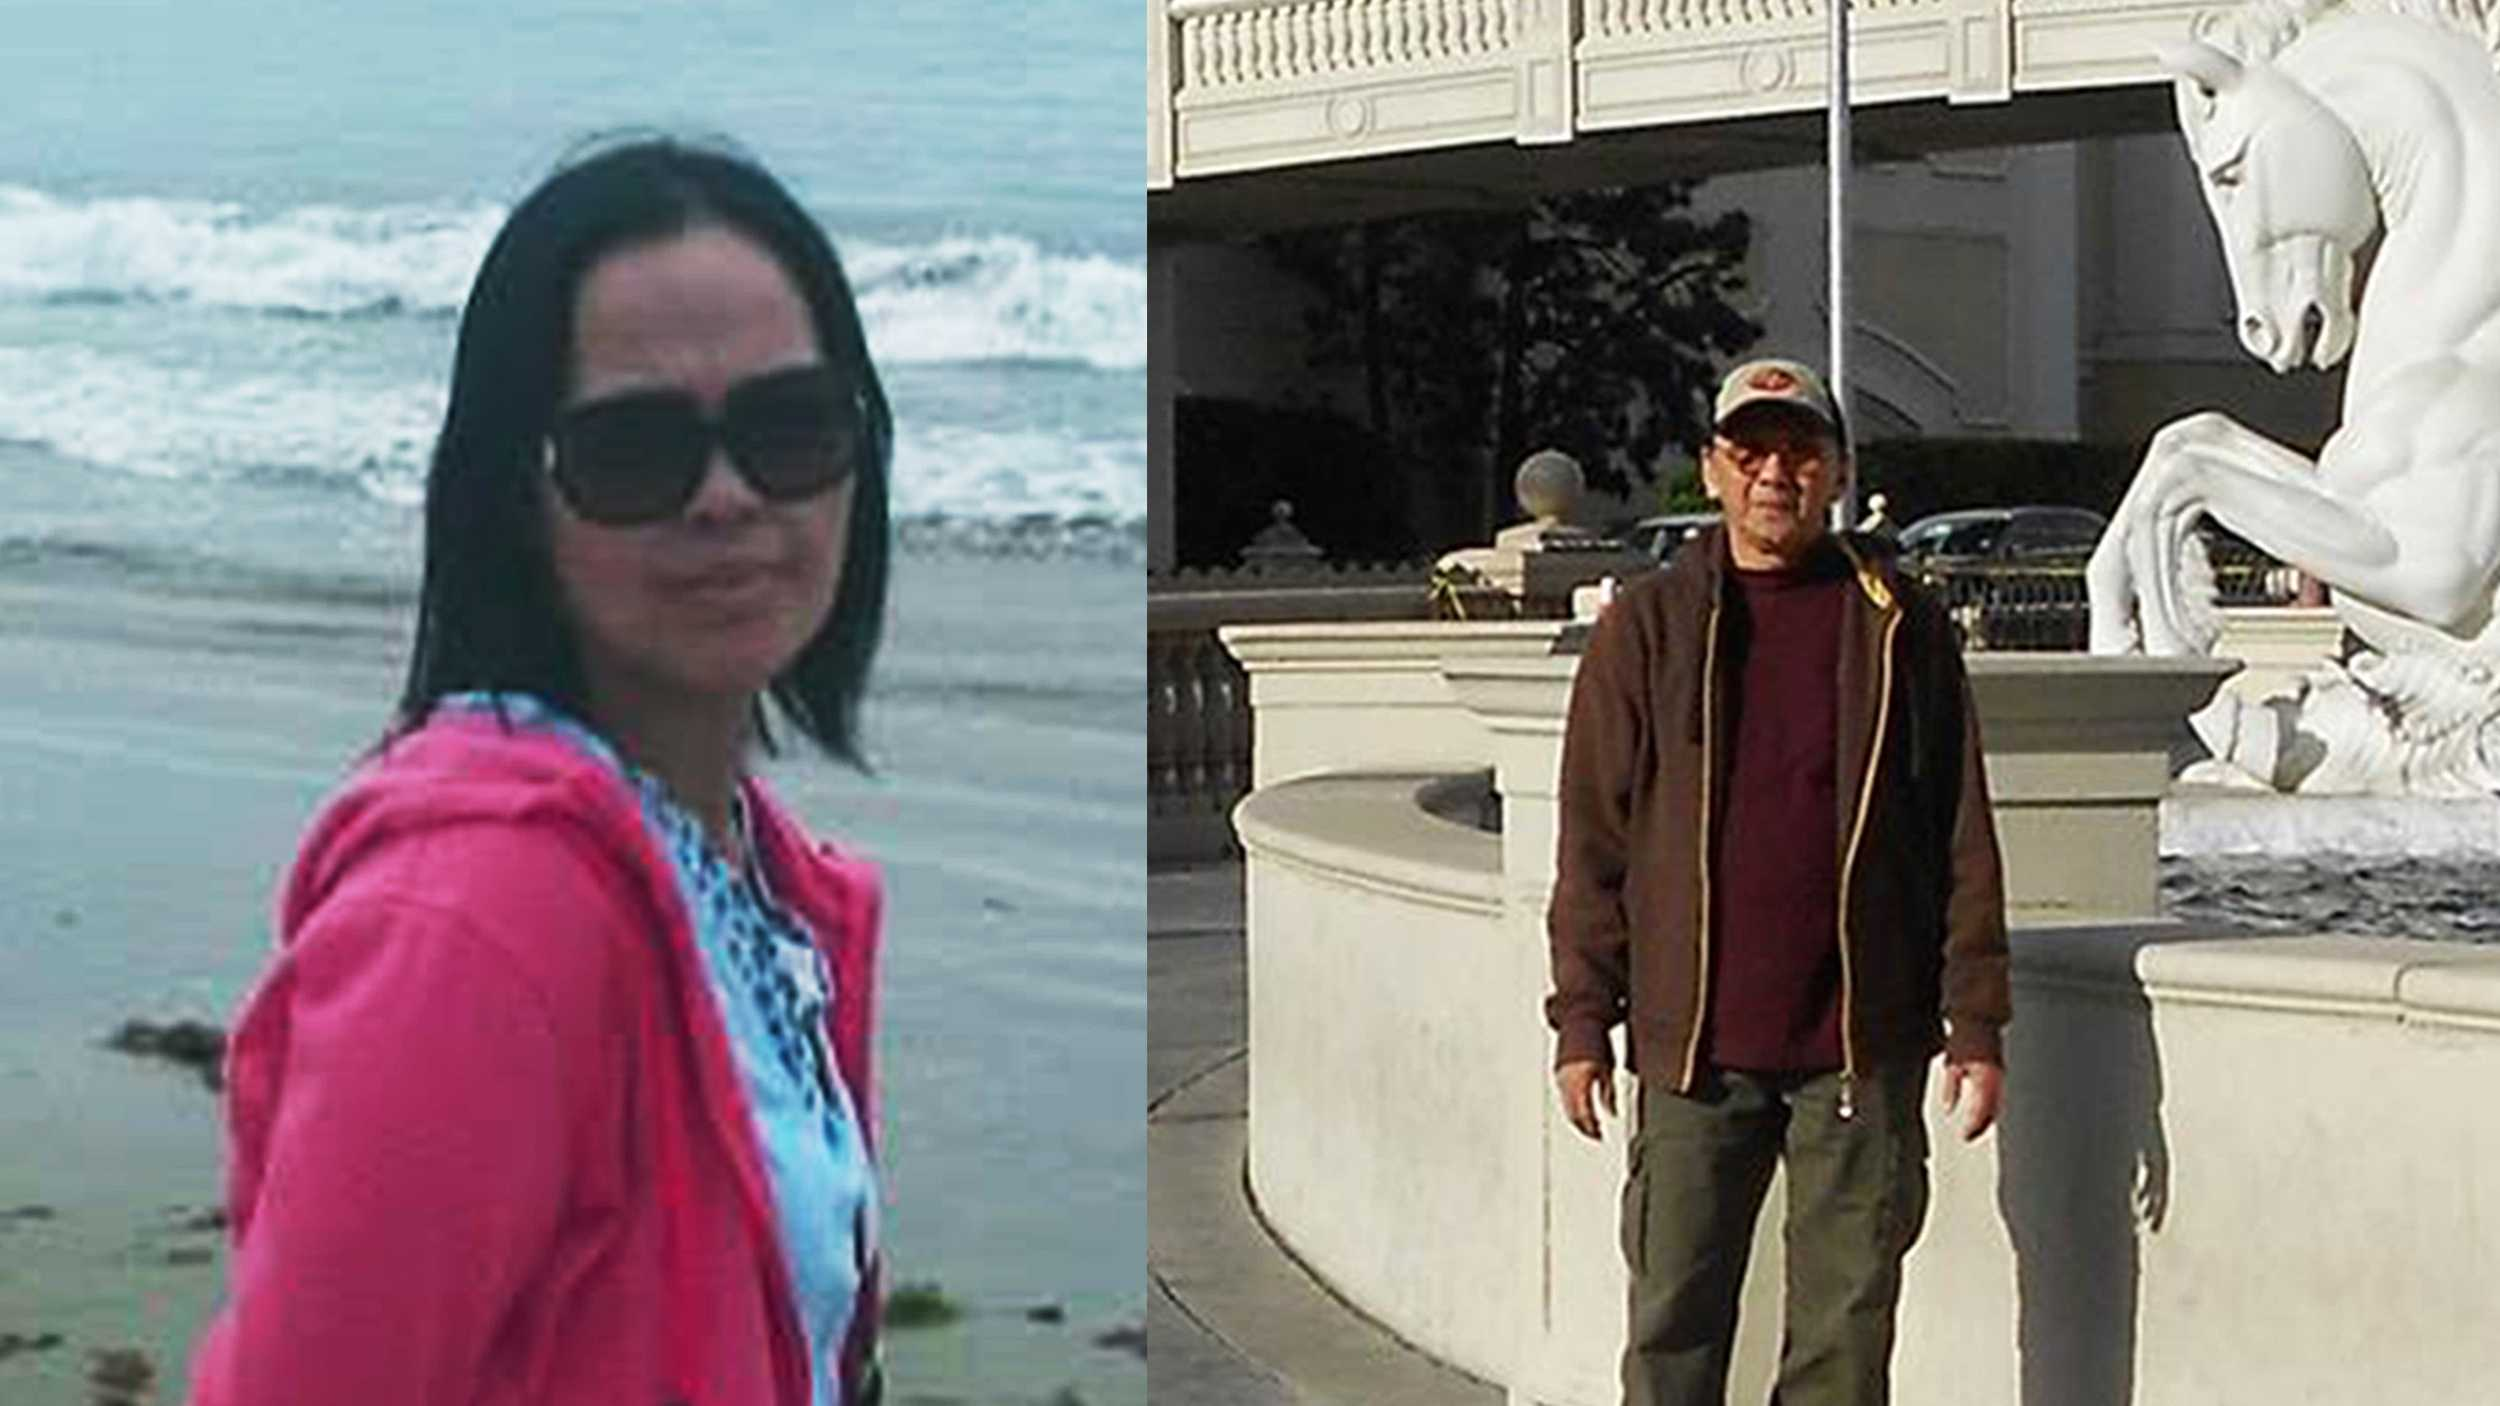 Felicidad Legaspi, left, and Oliver Legaspi, right, were shot to death in Salinas on Aug. 27, 2015.